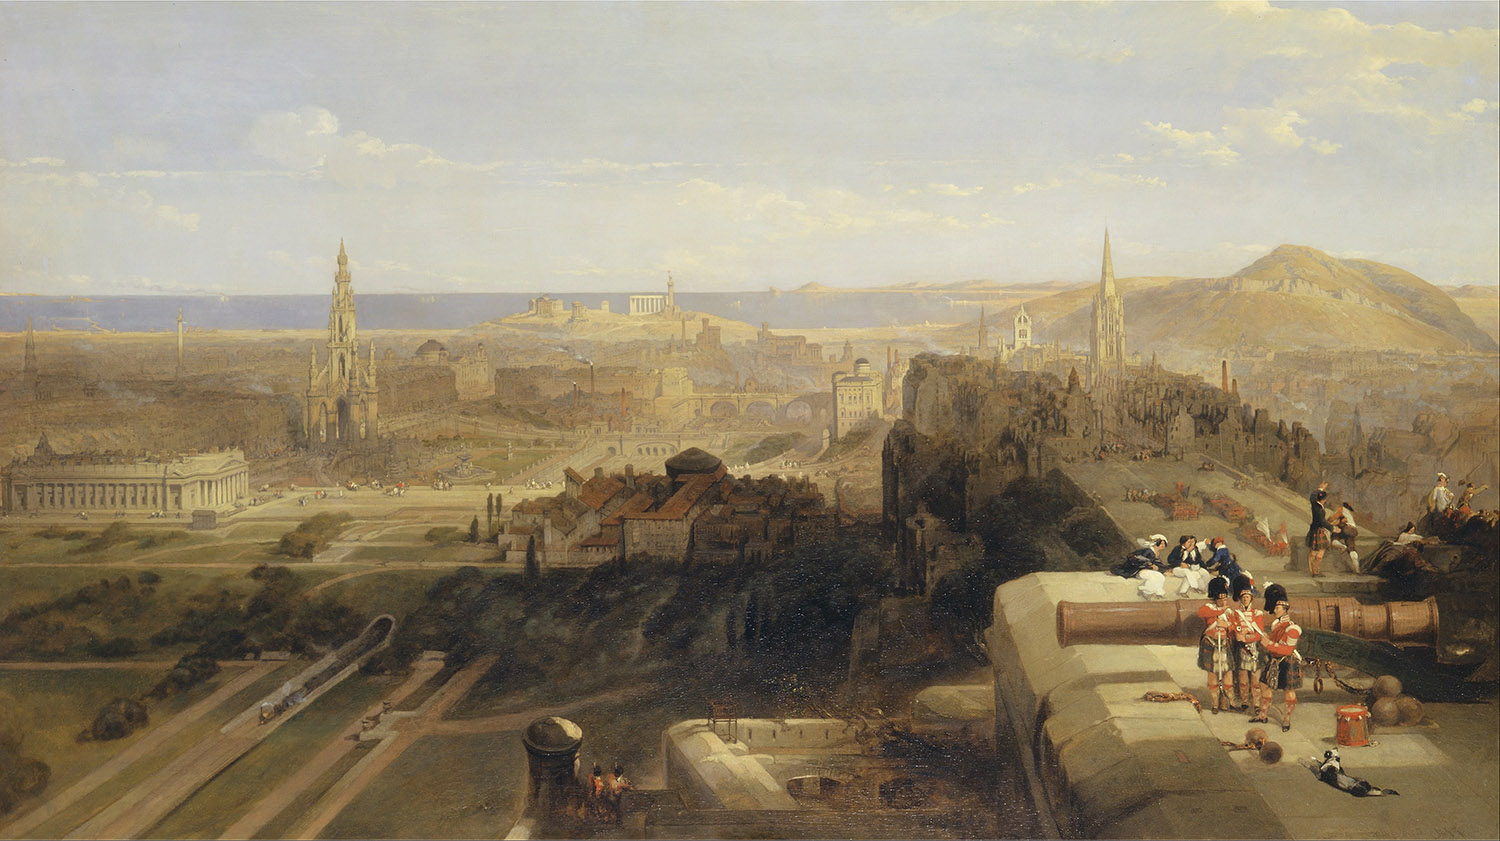 Edinburgh from the Castle, David Roberts, 1847.